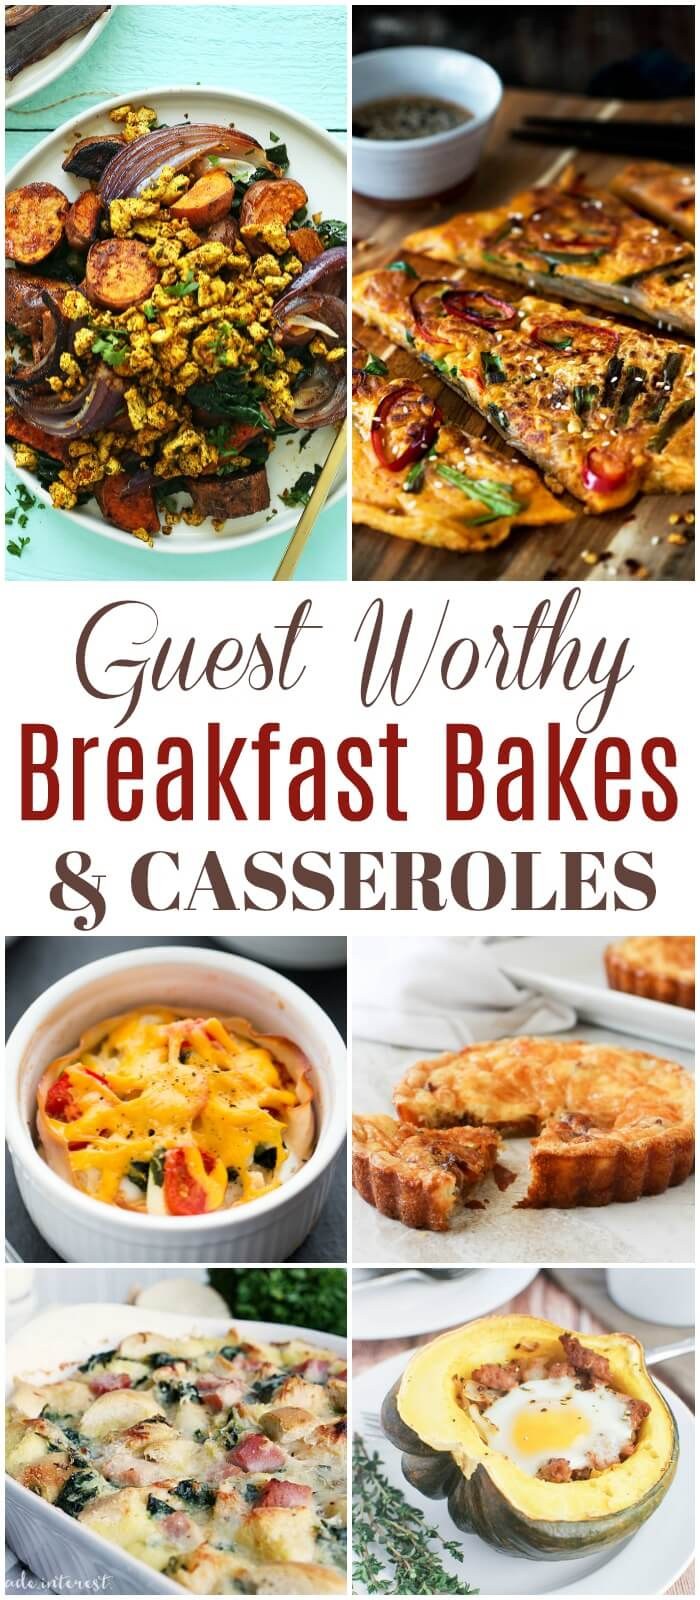 During the holidays serve family and friends delicious and amazing Guest Worthy Breakfast Bakes and Casseroles. These recipes are perfect for any occasion.